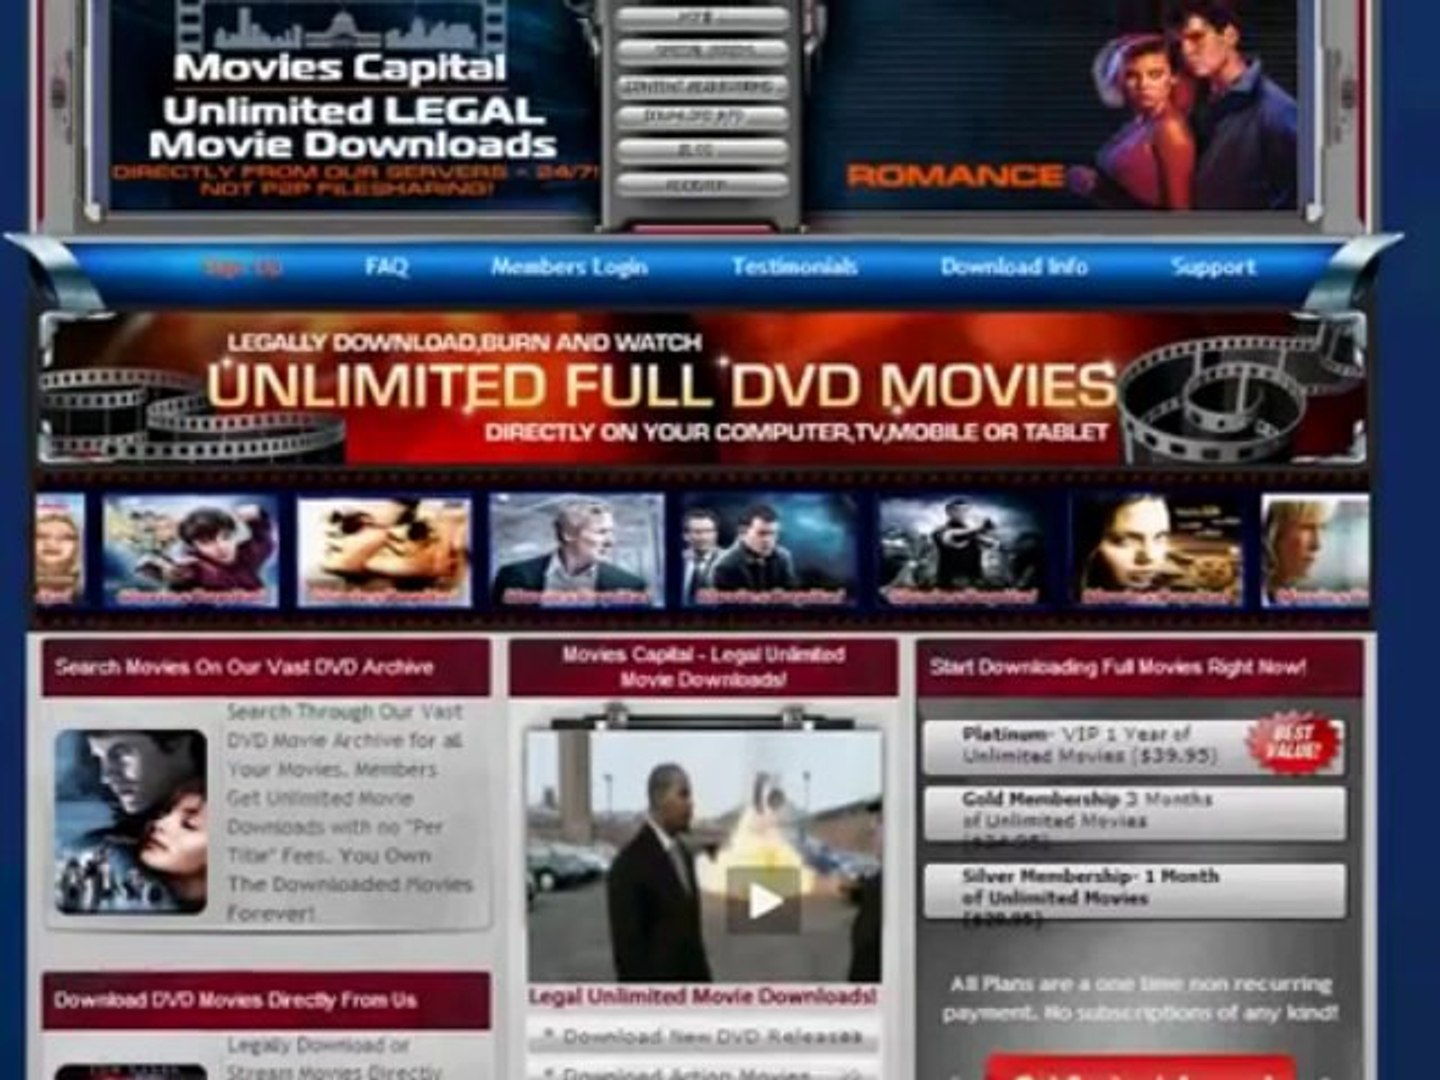 movies capital - movies free online